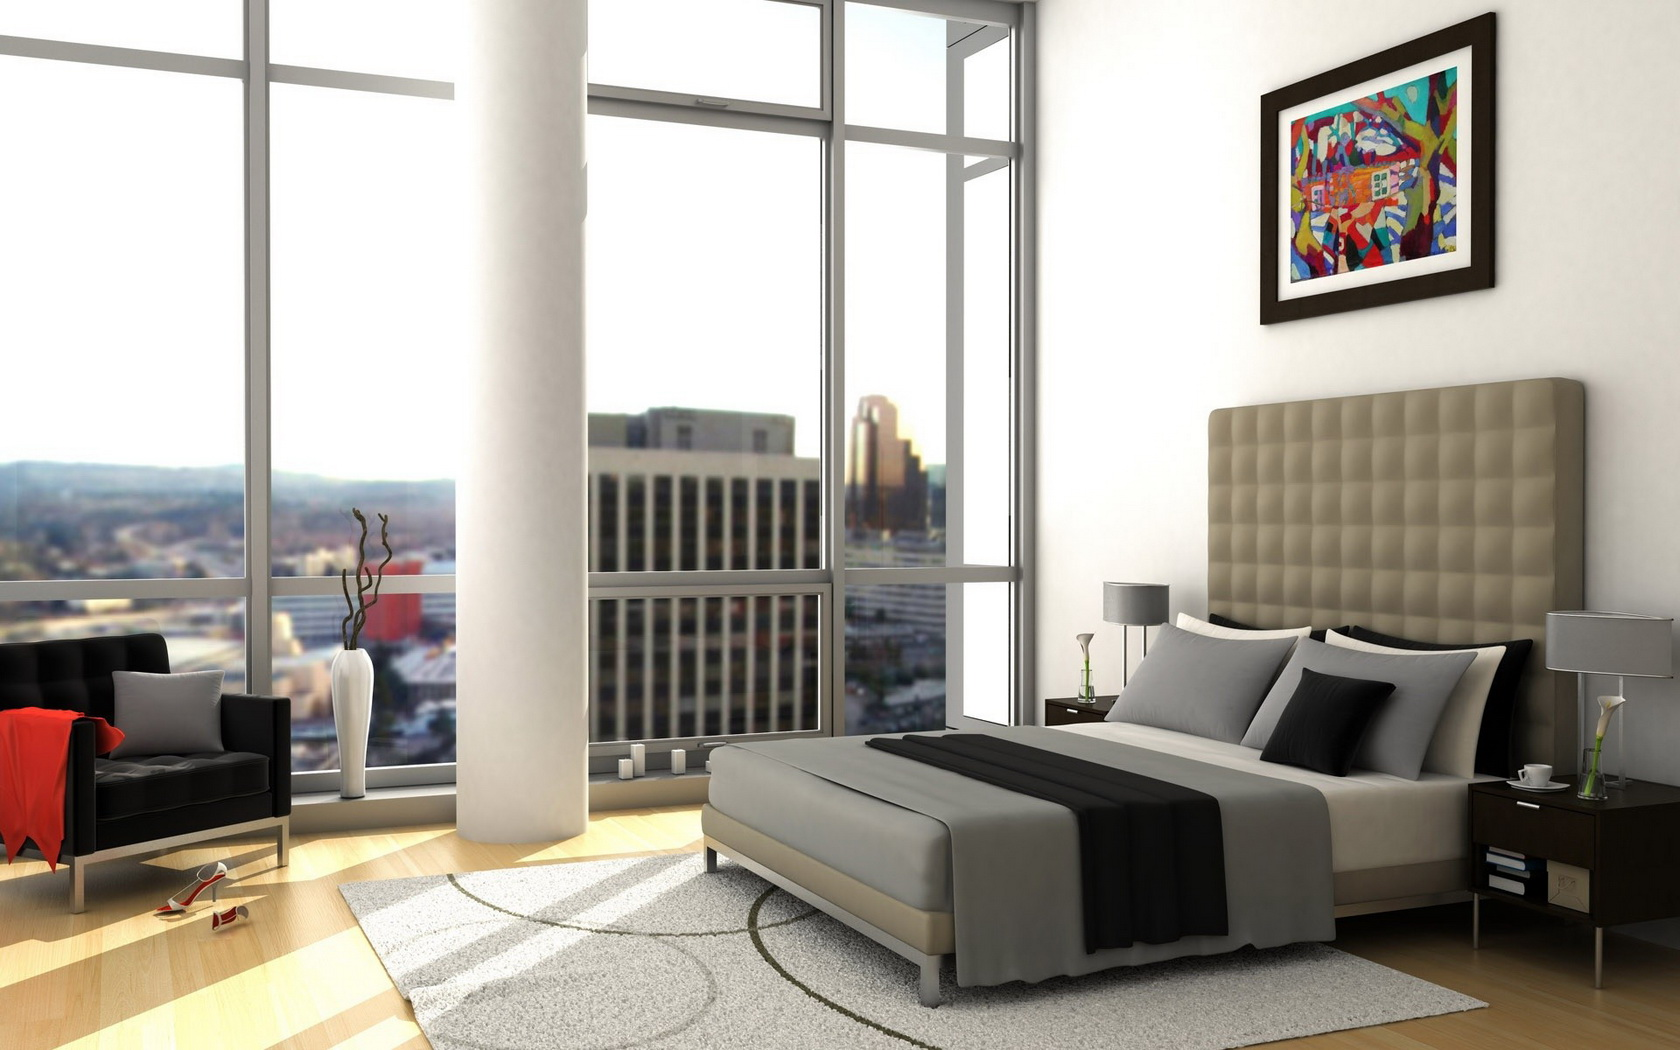 Design Software To Design Rooms Free Download Full Version